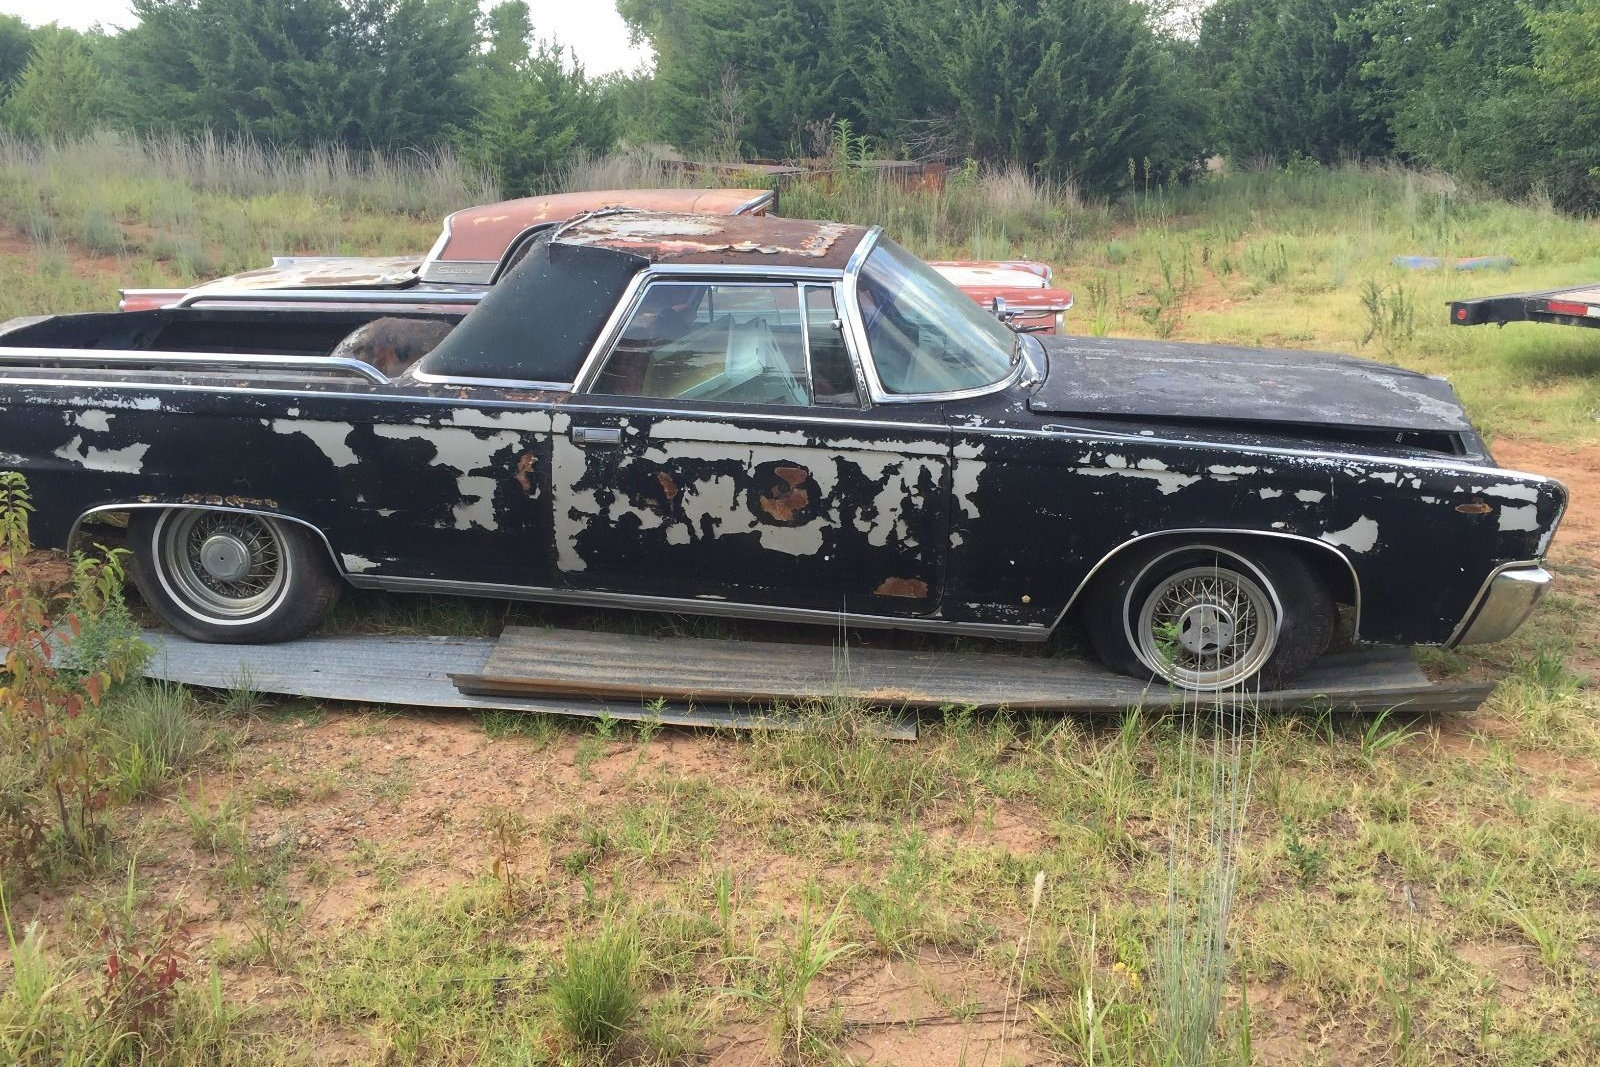 Classy Pickup Maybe 1965 Imperial Flower Car